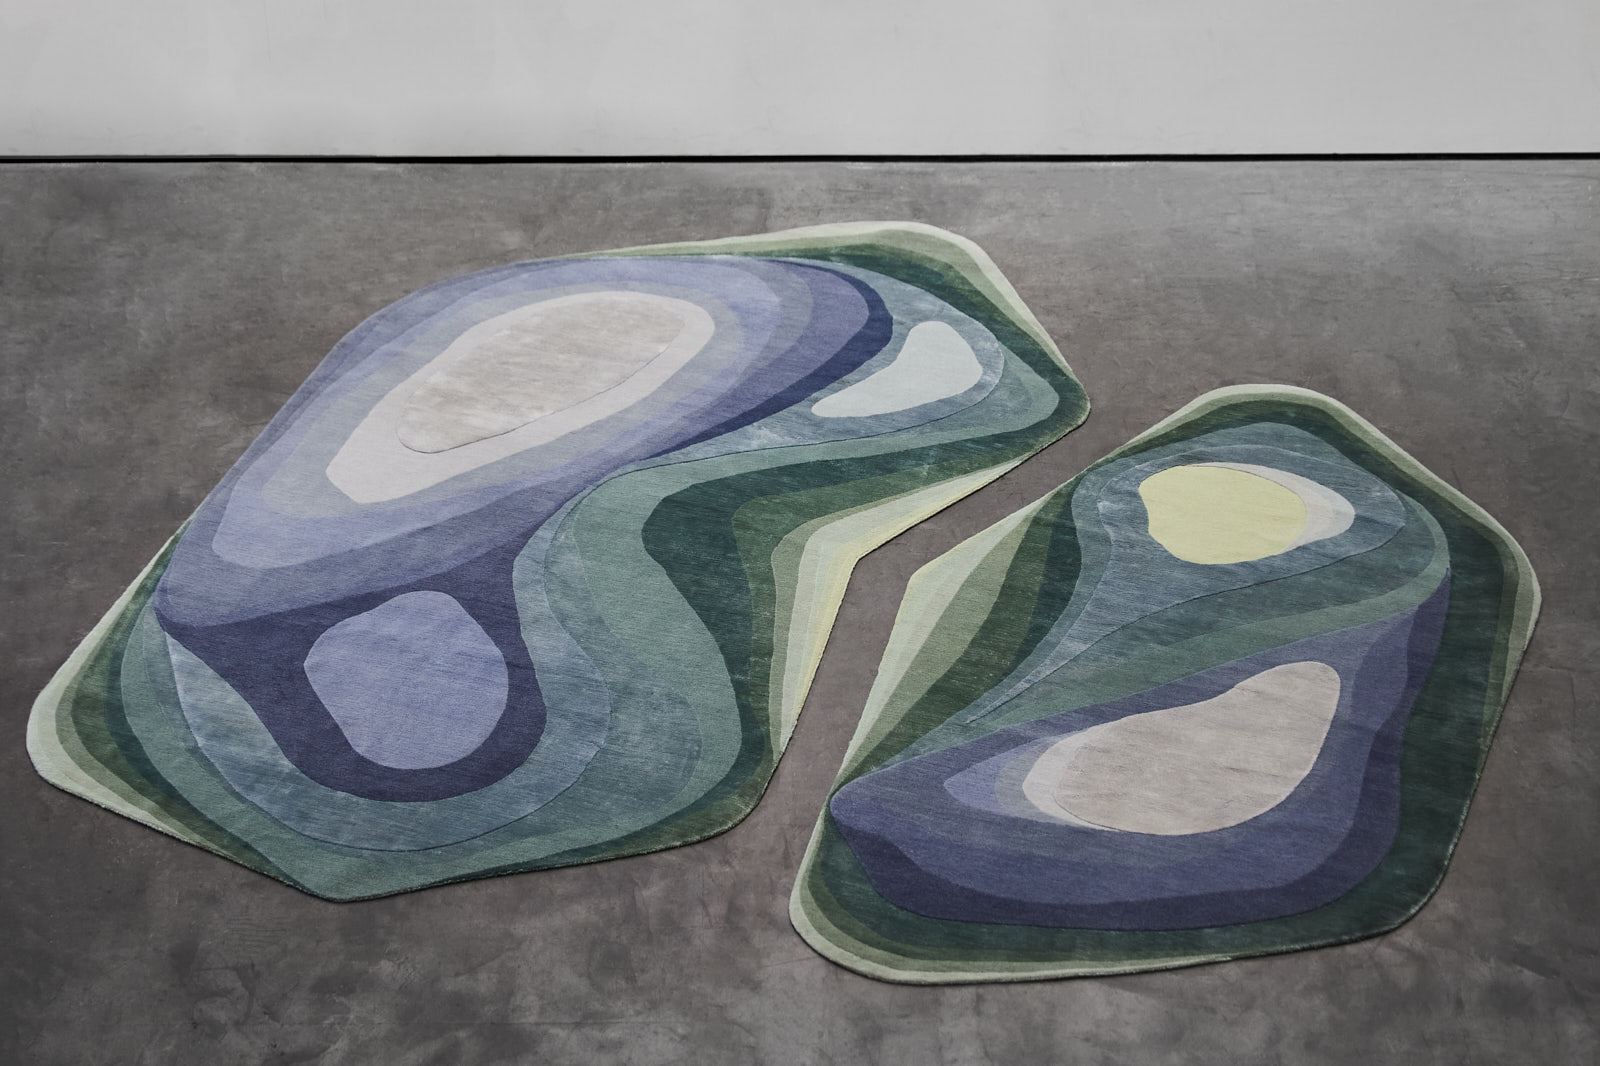 Strata Rug Collection designed by Roula Salmon - a collaboration between Iwan Maktabi and House of Today.